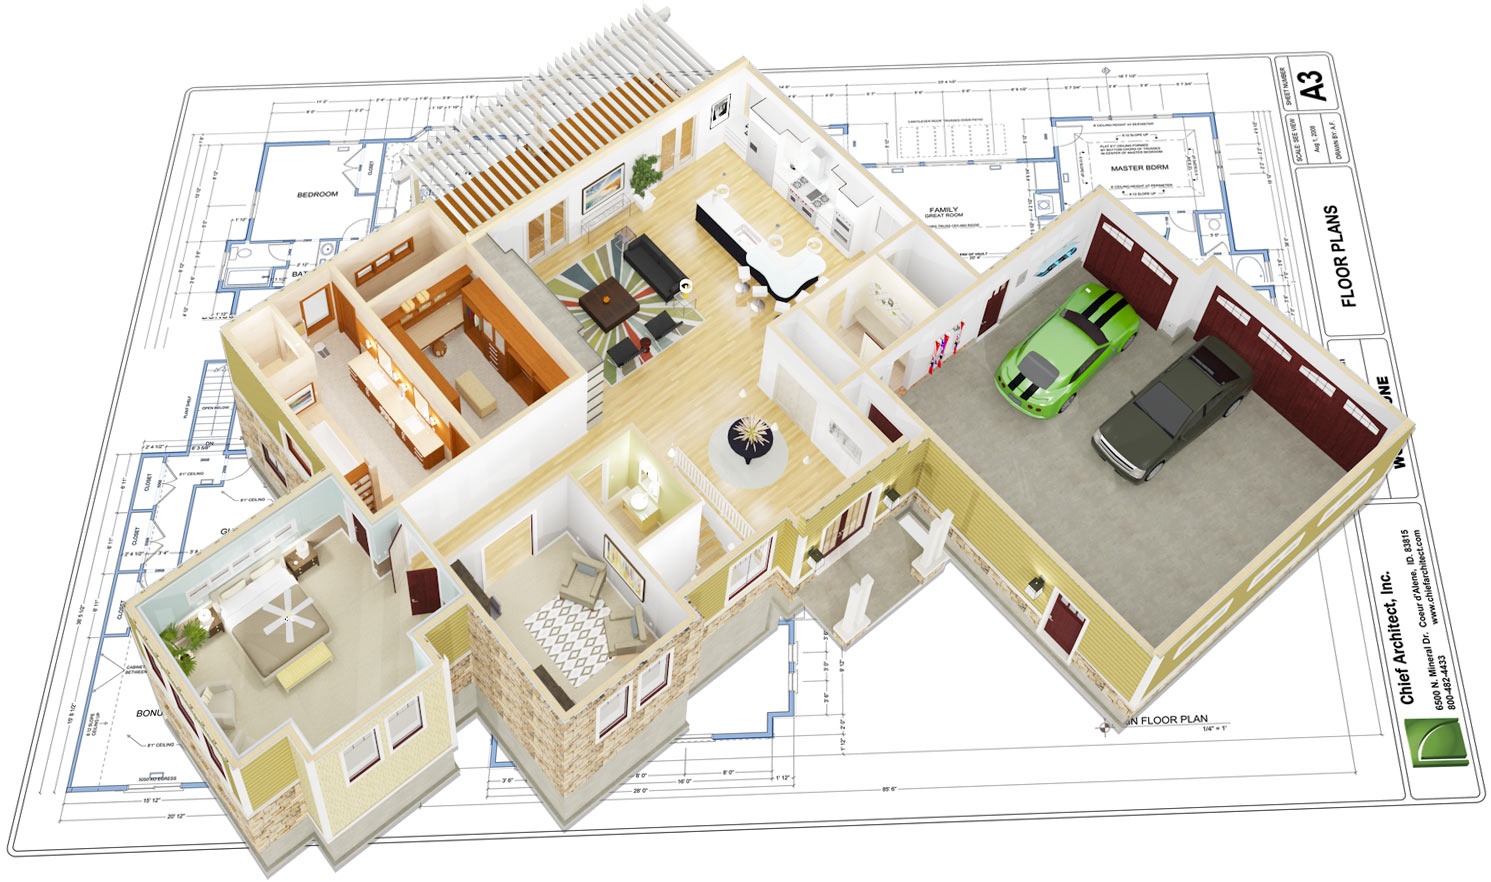 Chief architect interior software for professional Home interior design online tool